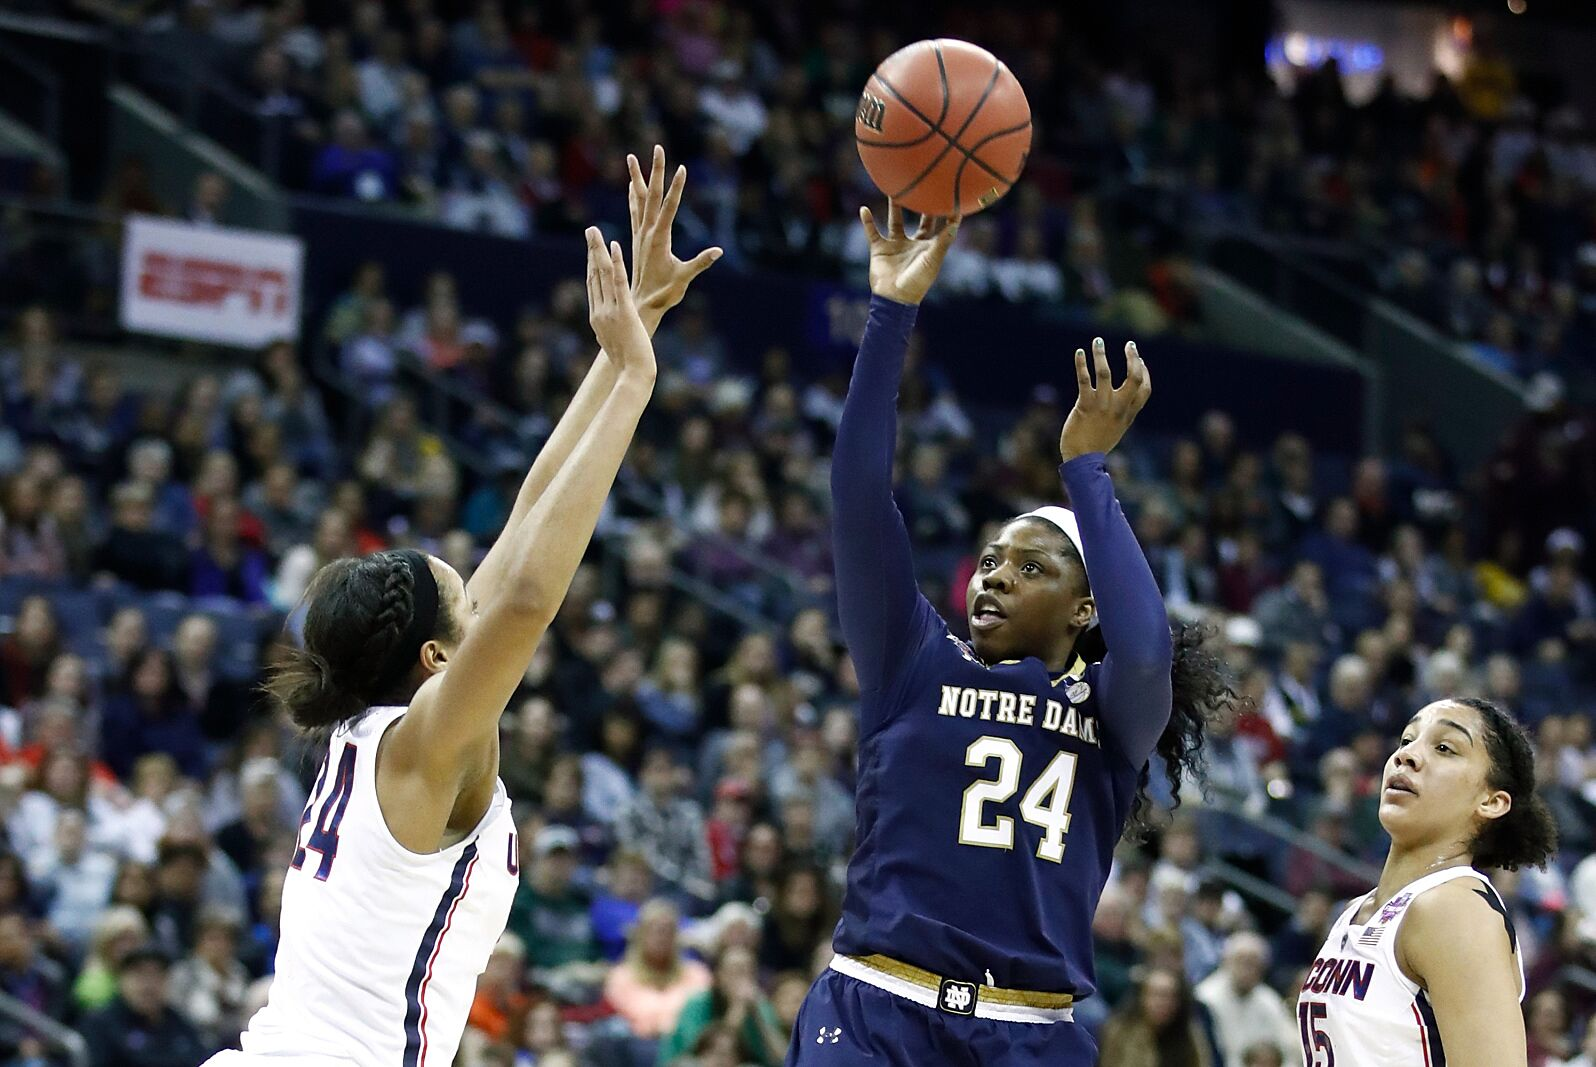 ncaa women's basketball: no. 2 uconn versus no. 1 notre dame